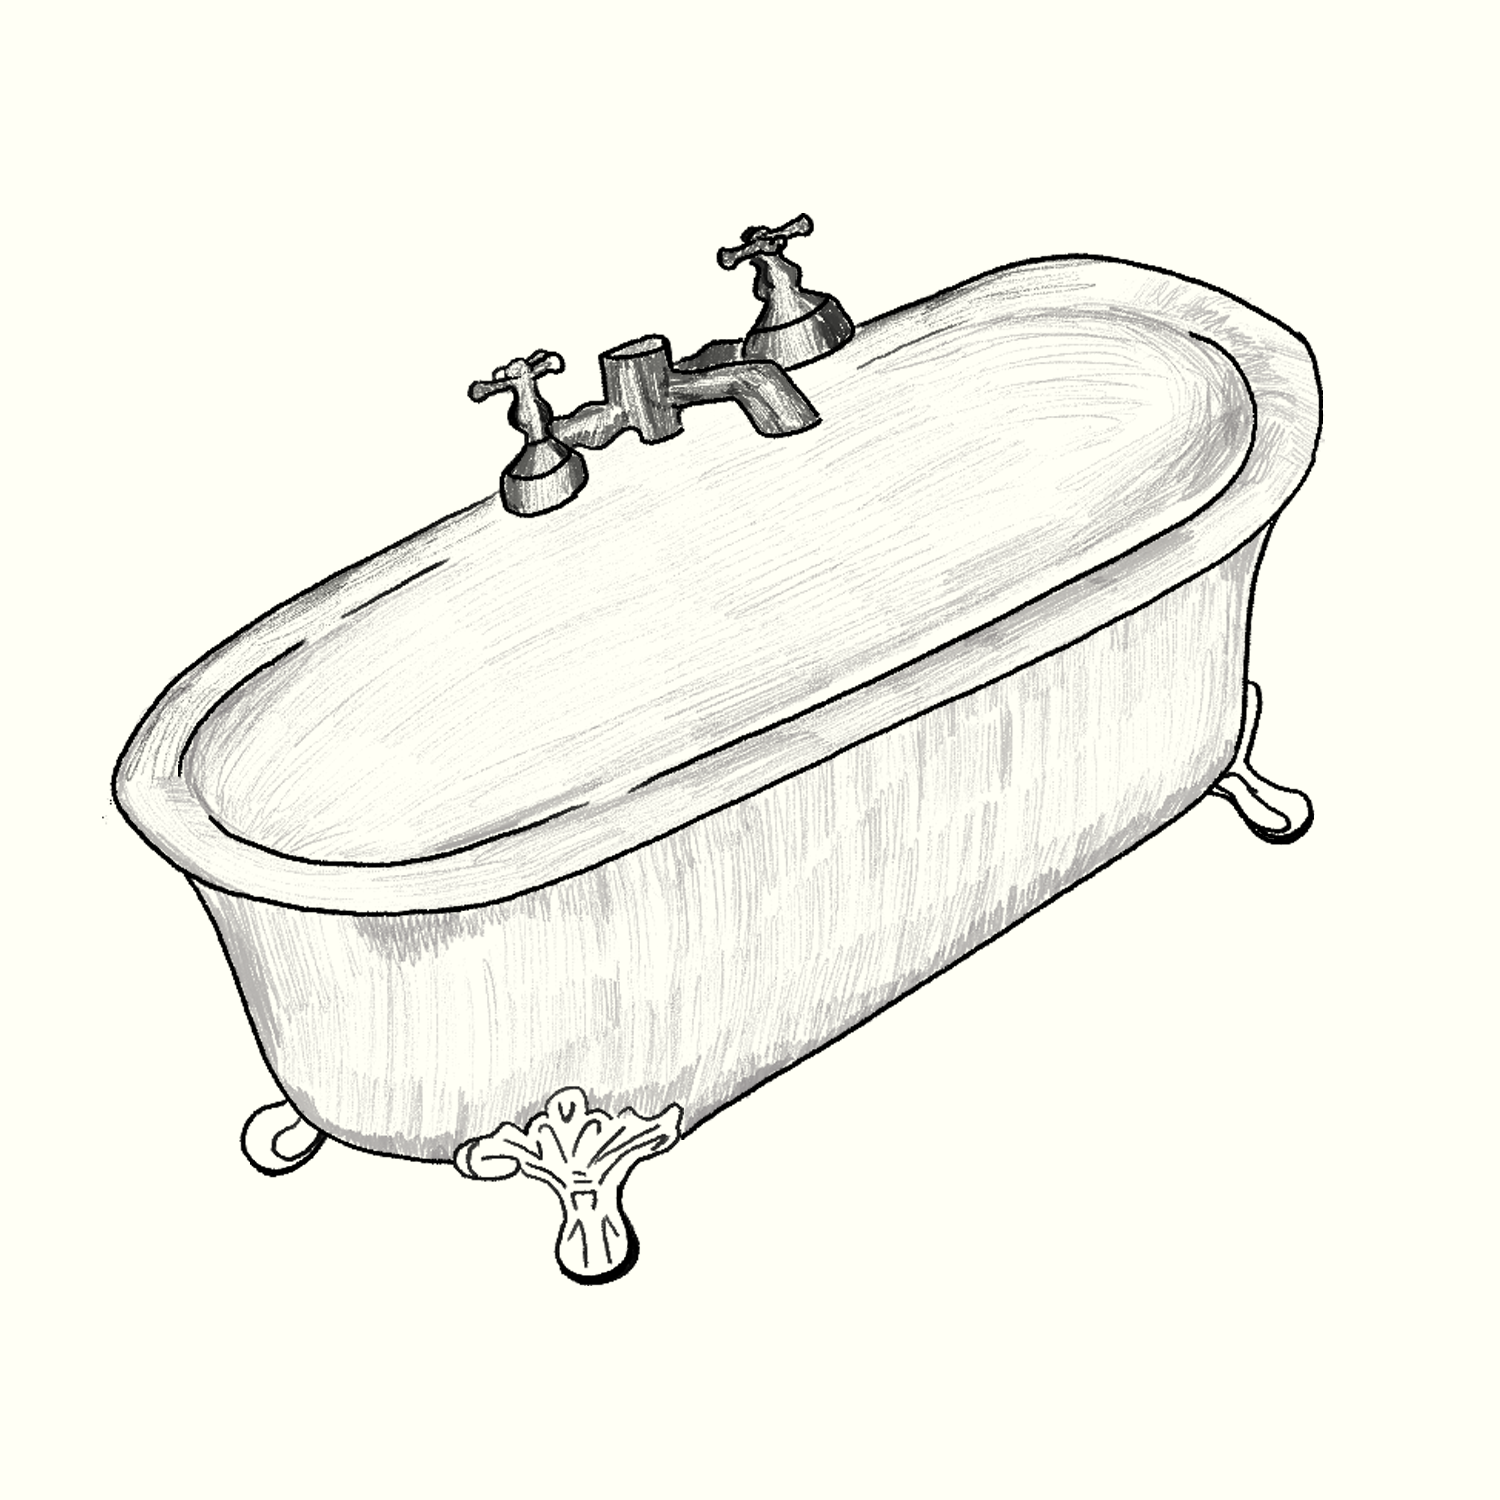 tub.png